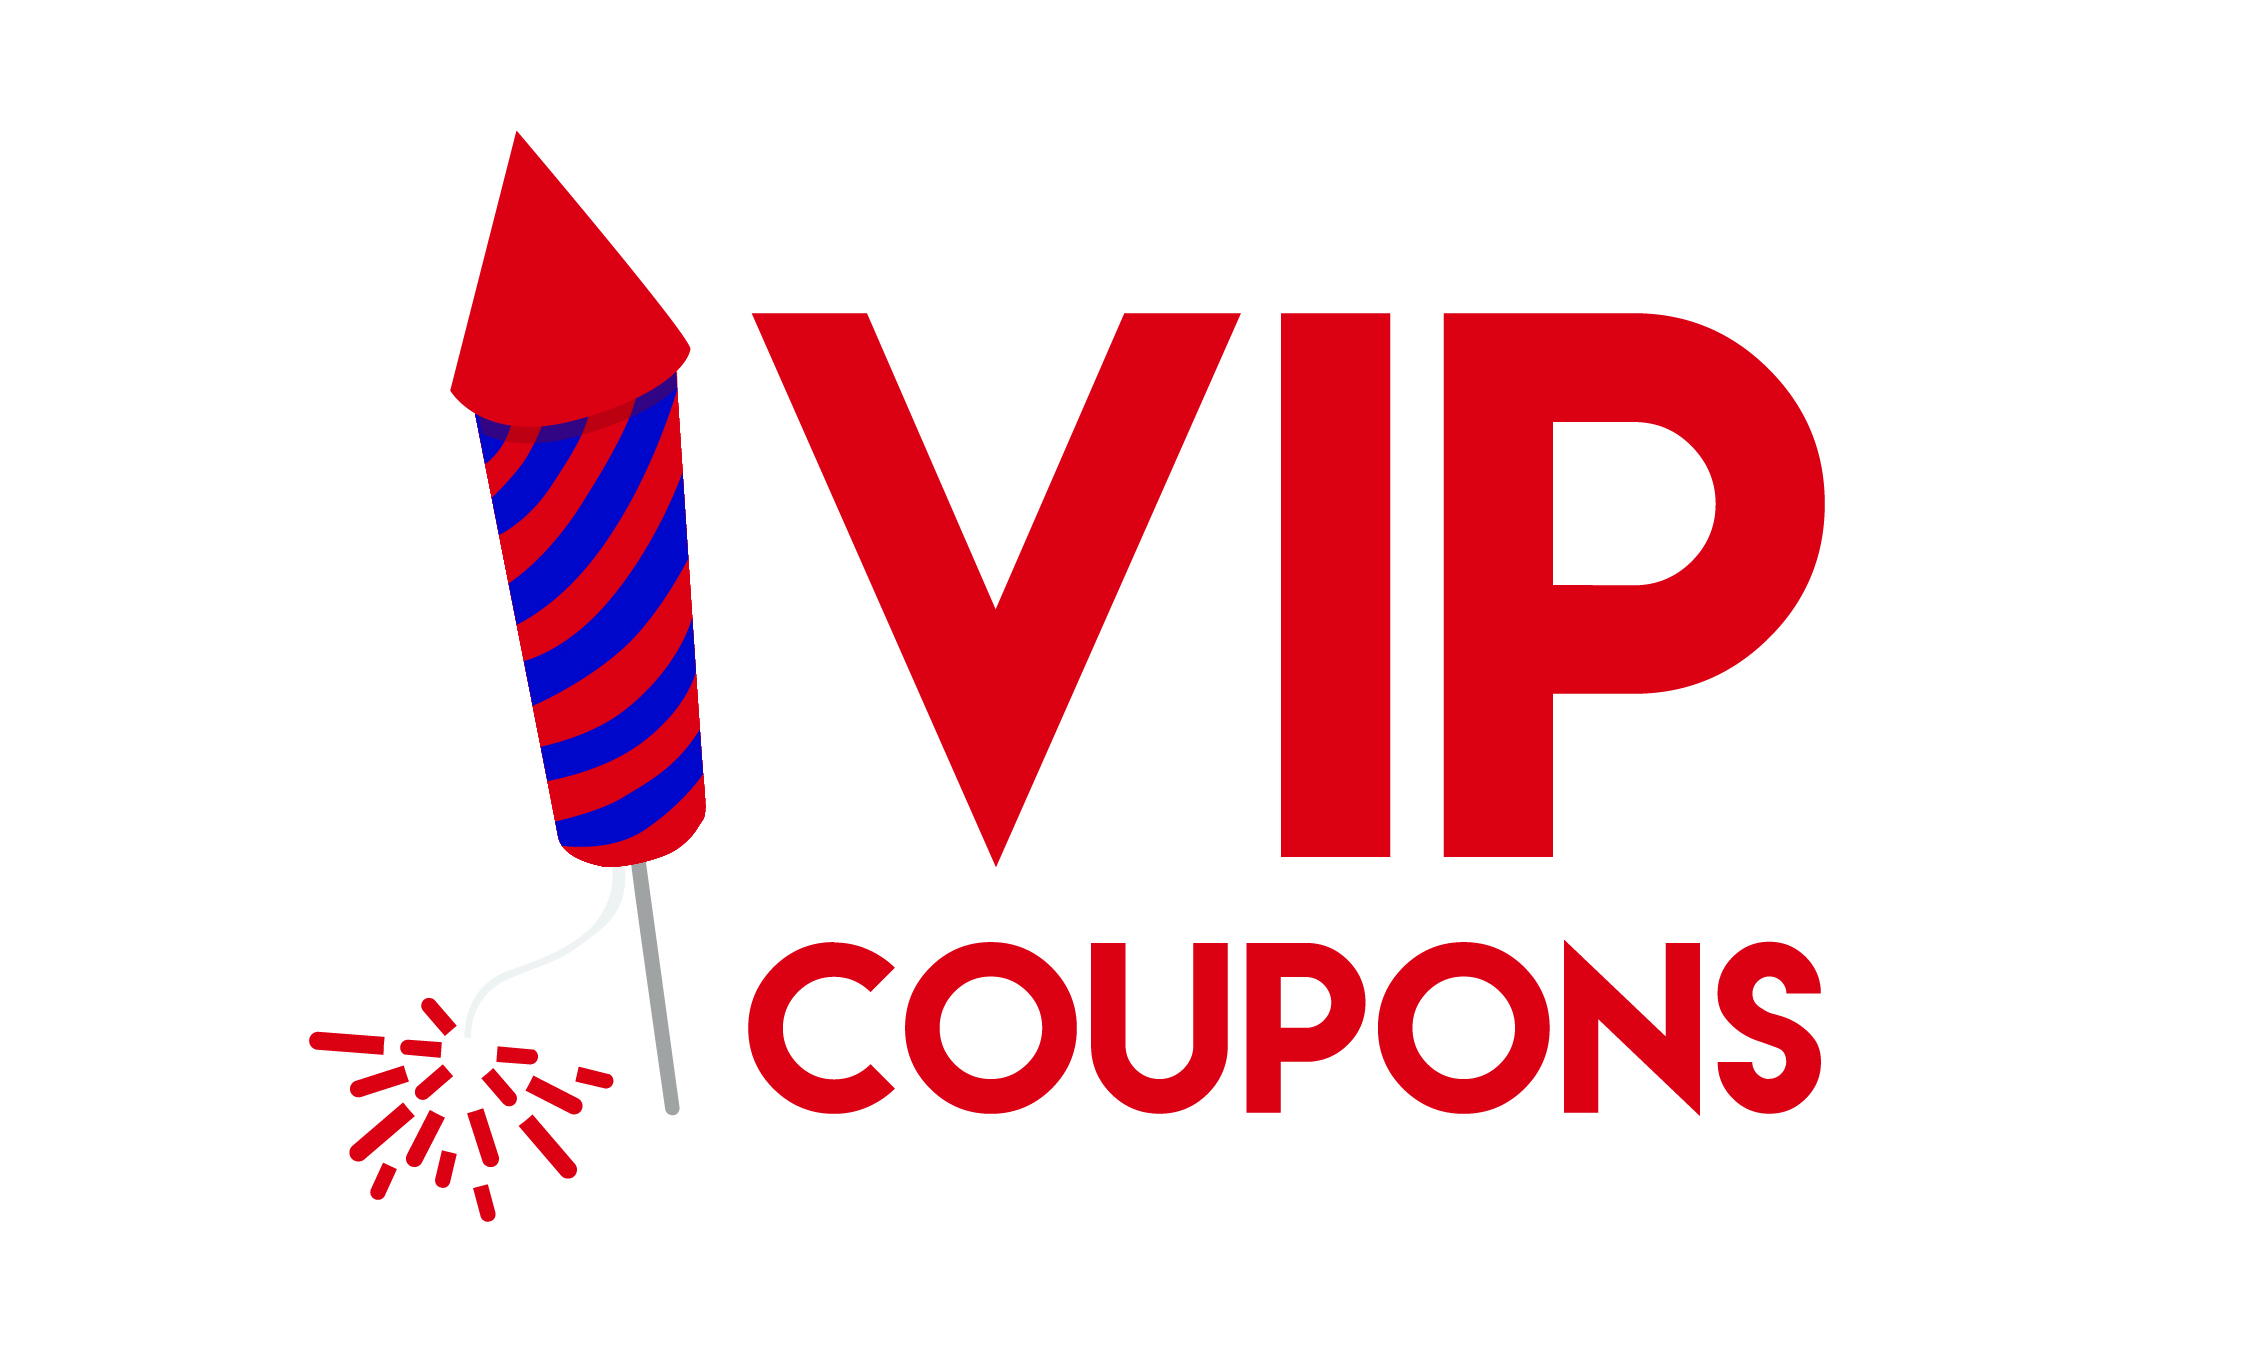 VIP Coupons - Buy 1 Get 1 Deals & 30% Off Specials